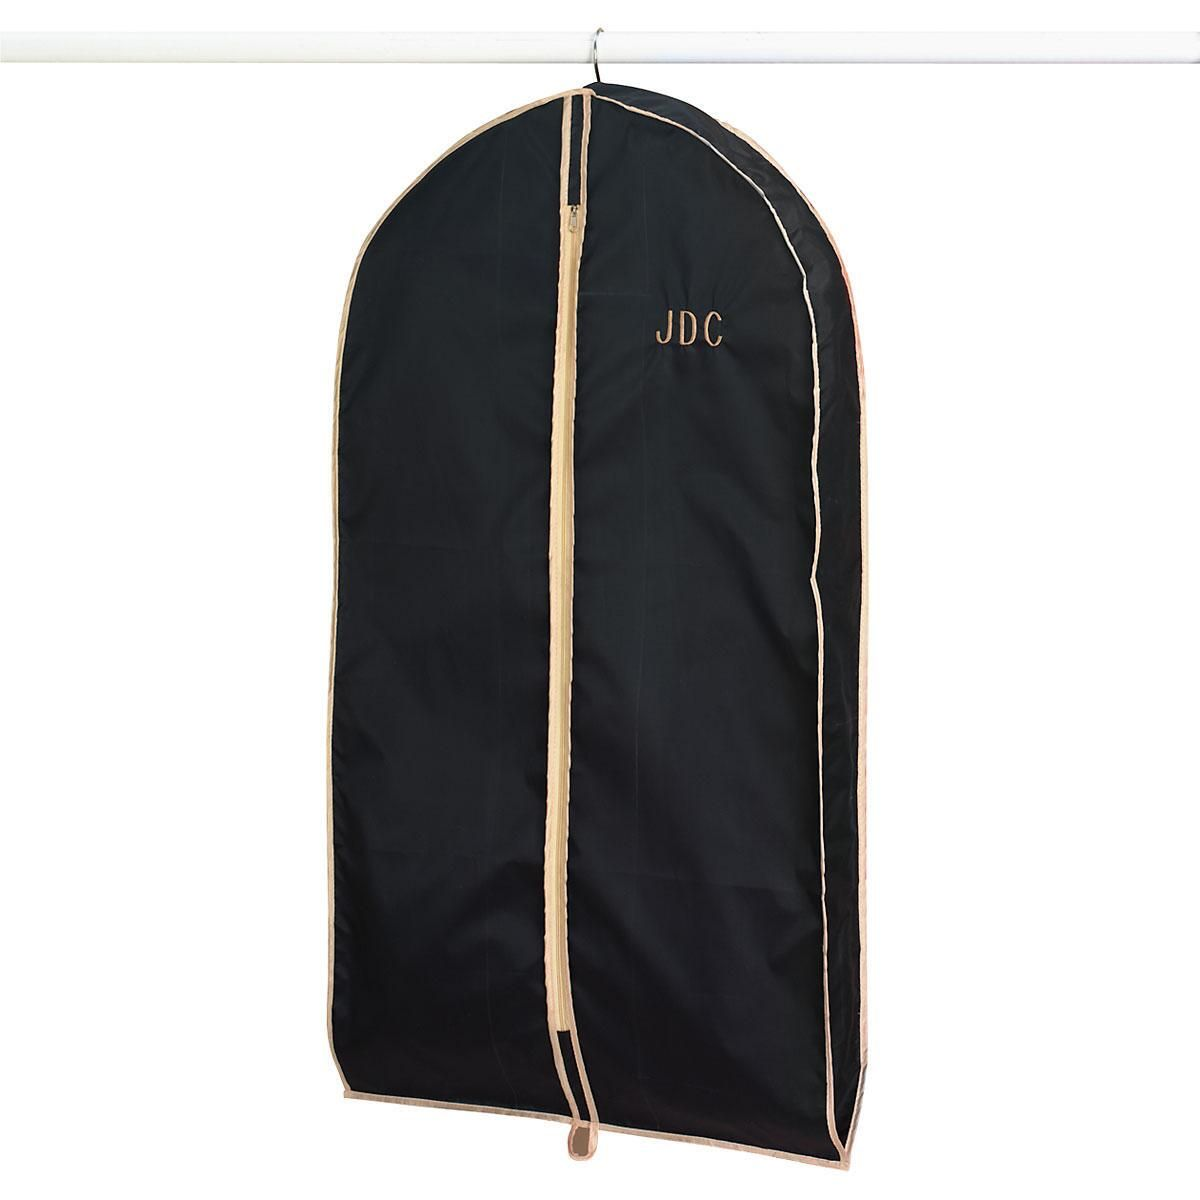 Personalized Garment Bags